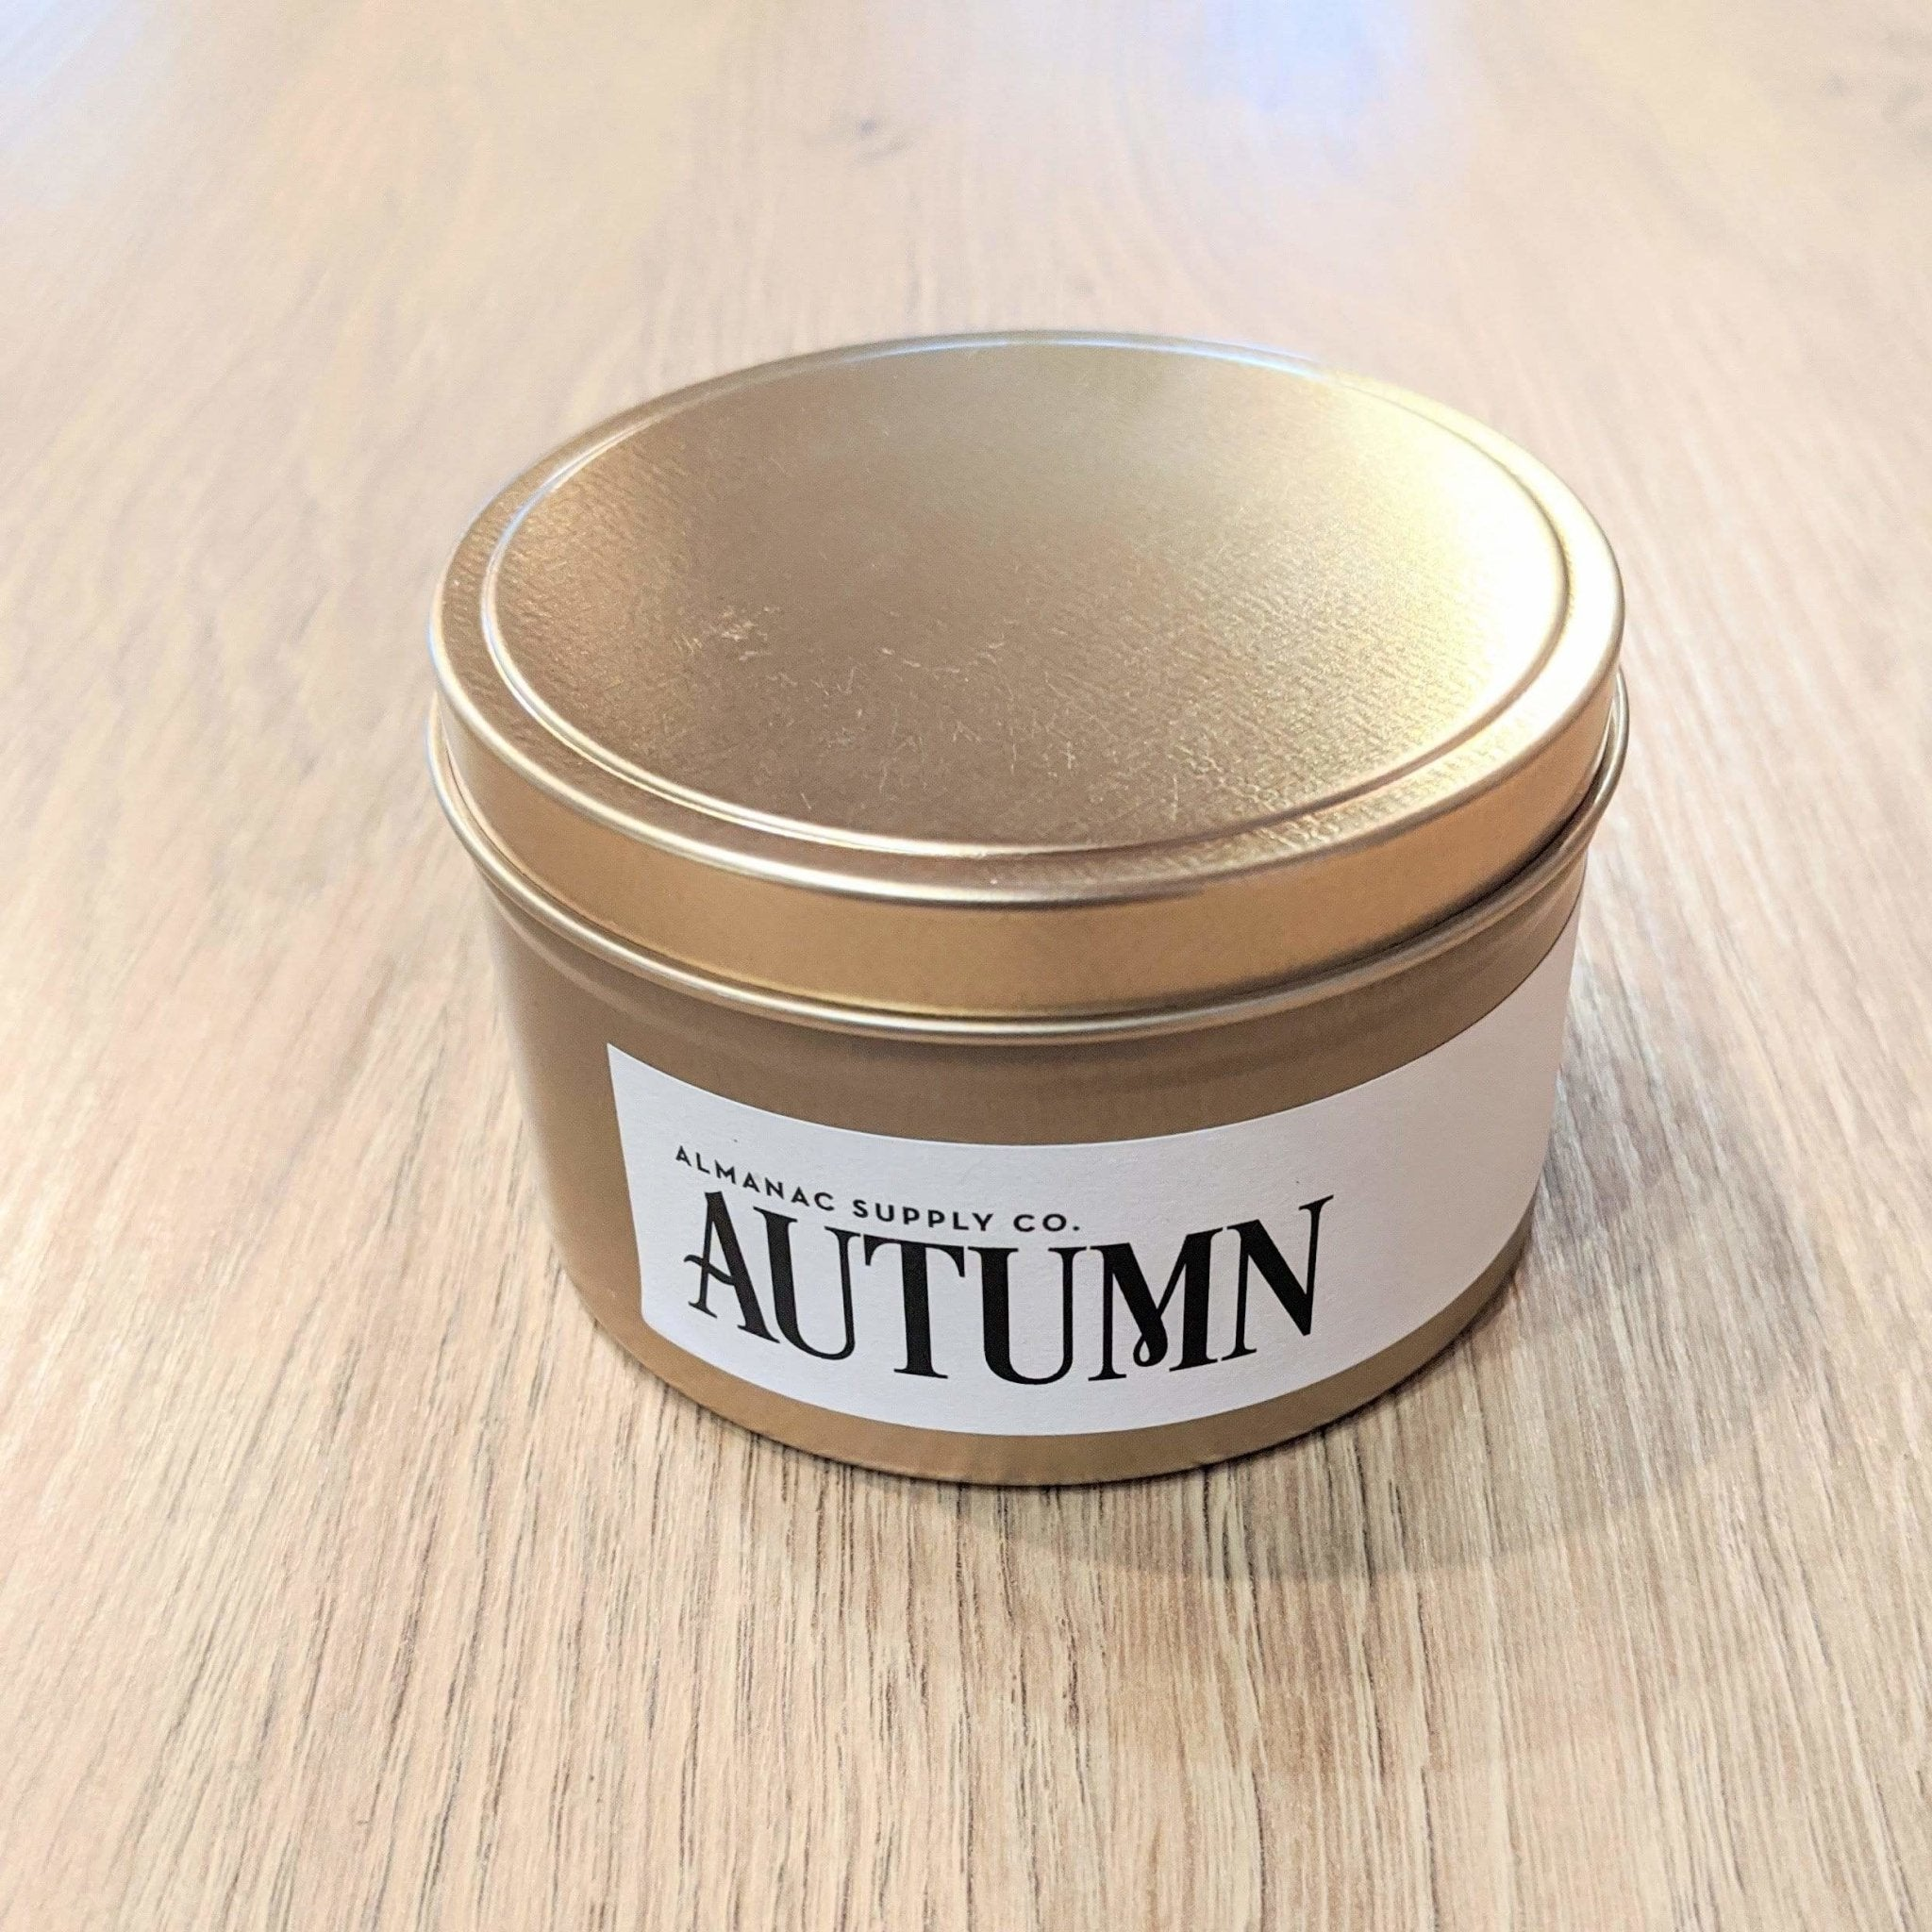 Autumn Candle - Almanac Supply Co -Freehand Market